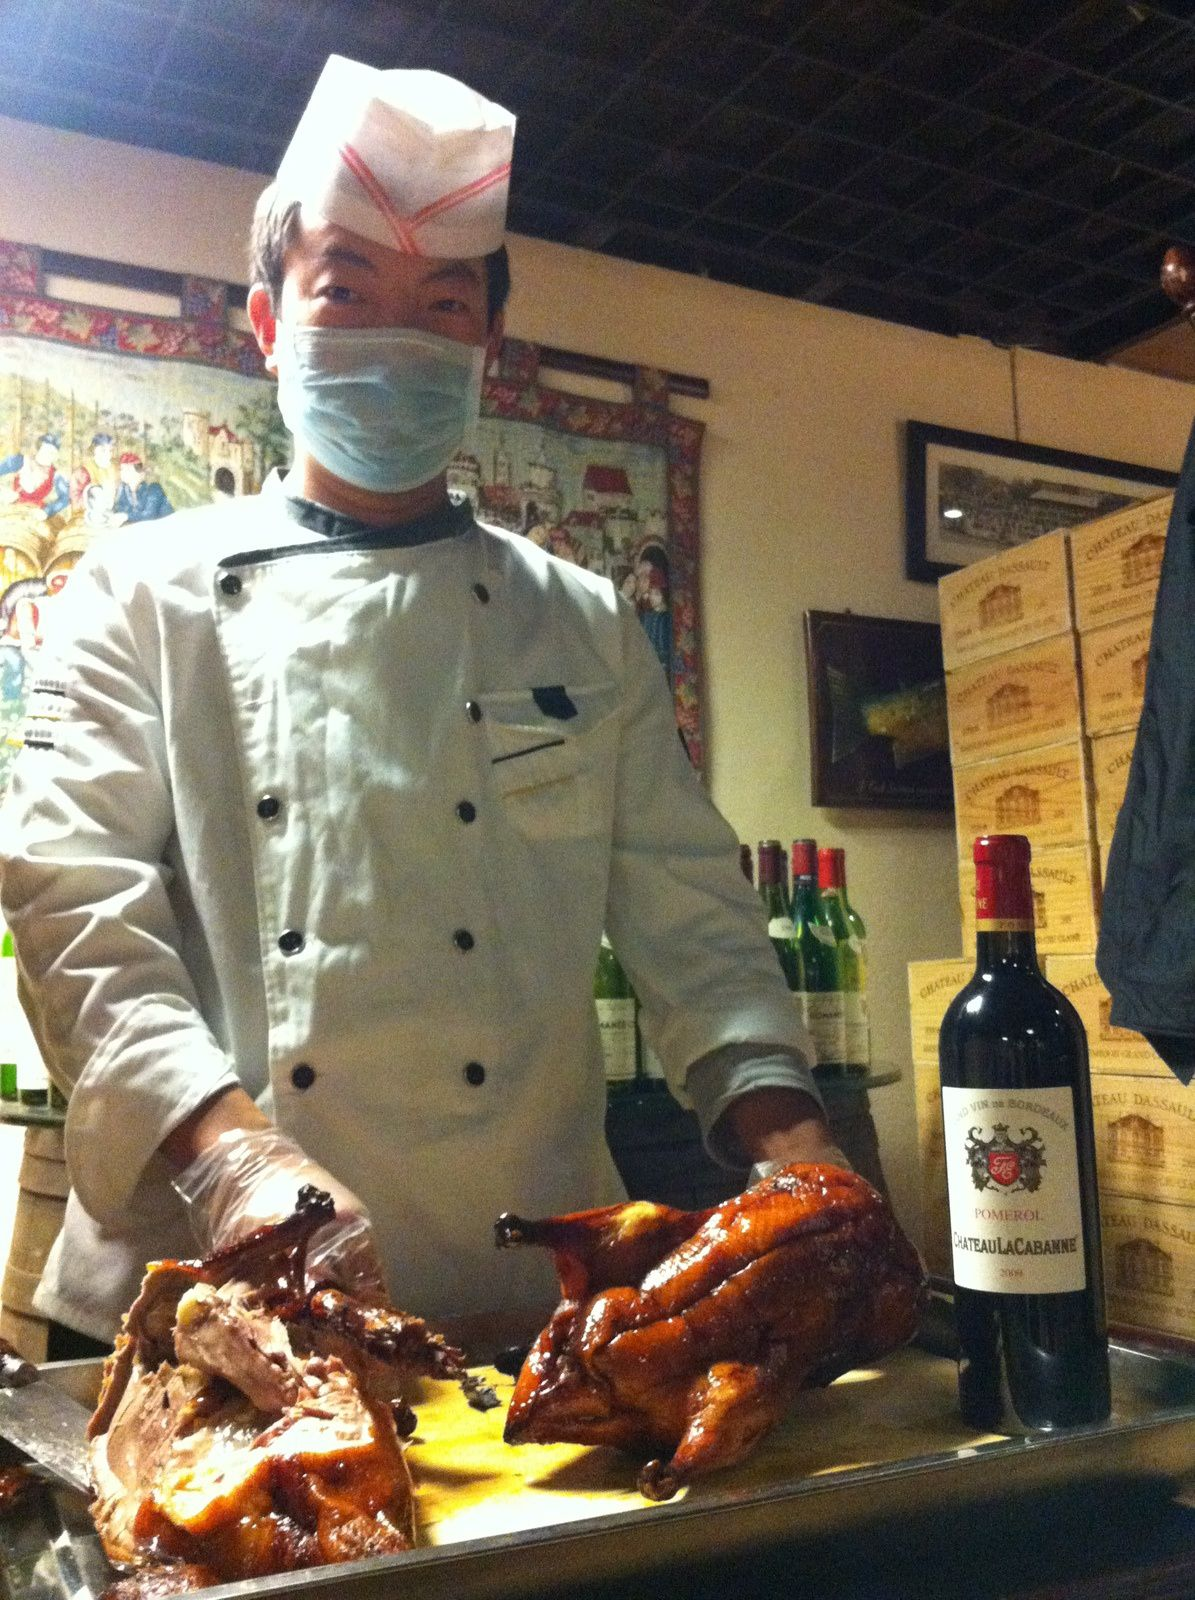 With its favorite Peking Duck...